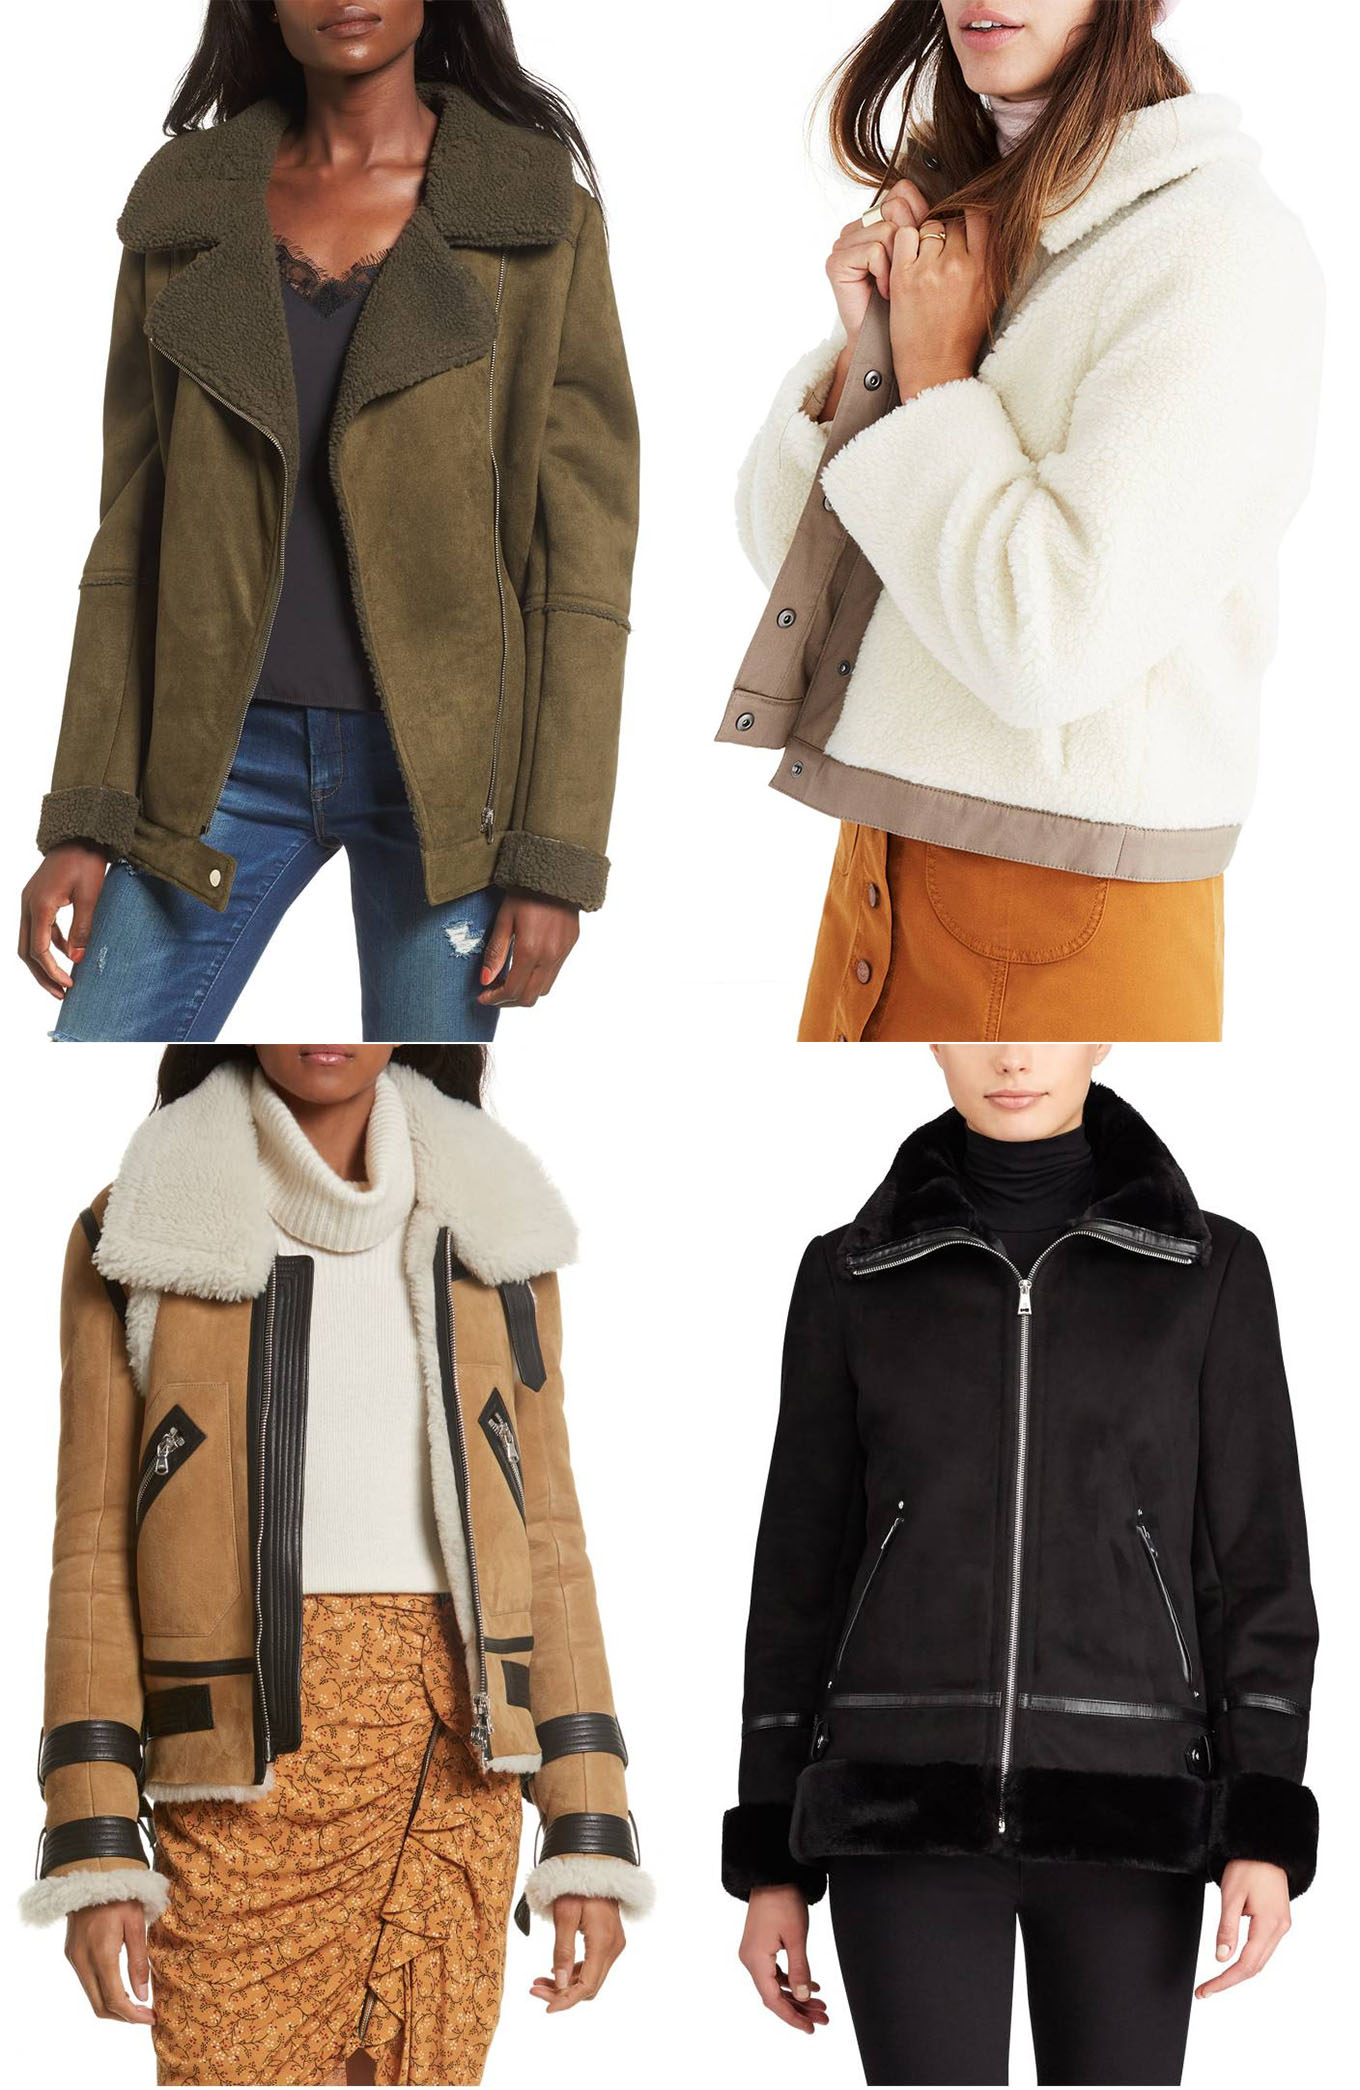 Ridgely Brode is looking for a Shearling Jacket to wear with a dress or jeans, something that is cozy and chic on her blog, Ridgely's Radar.